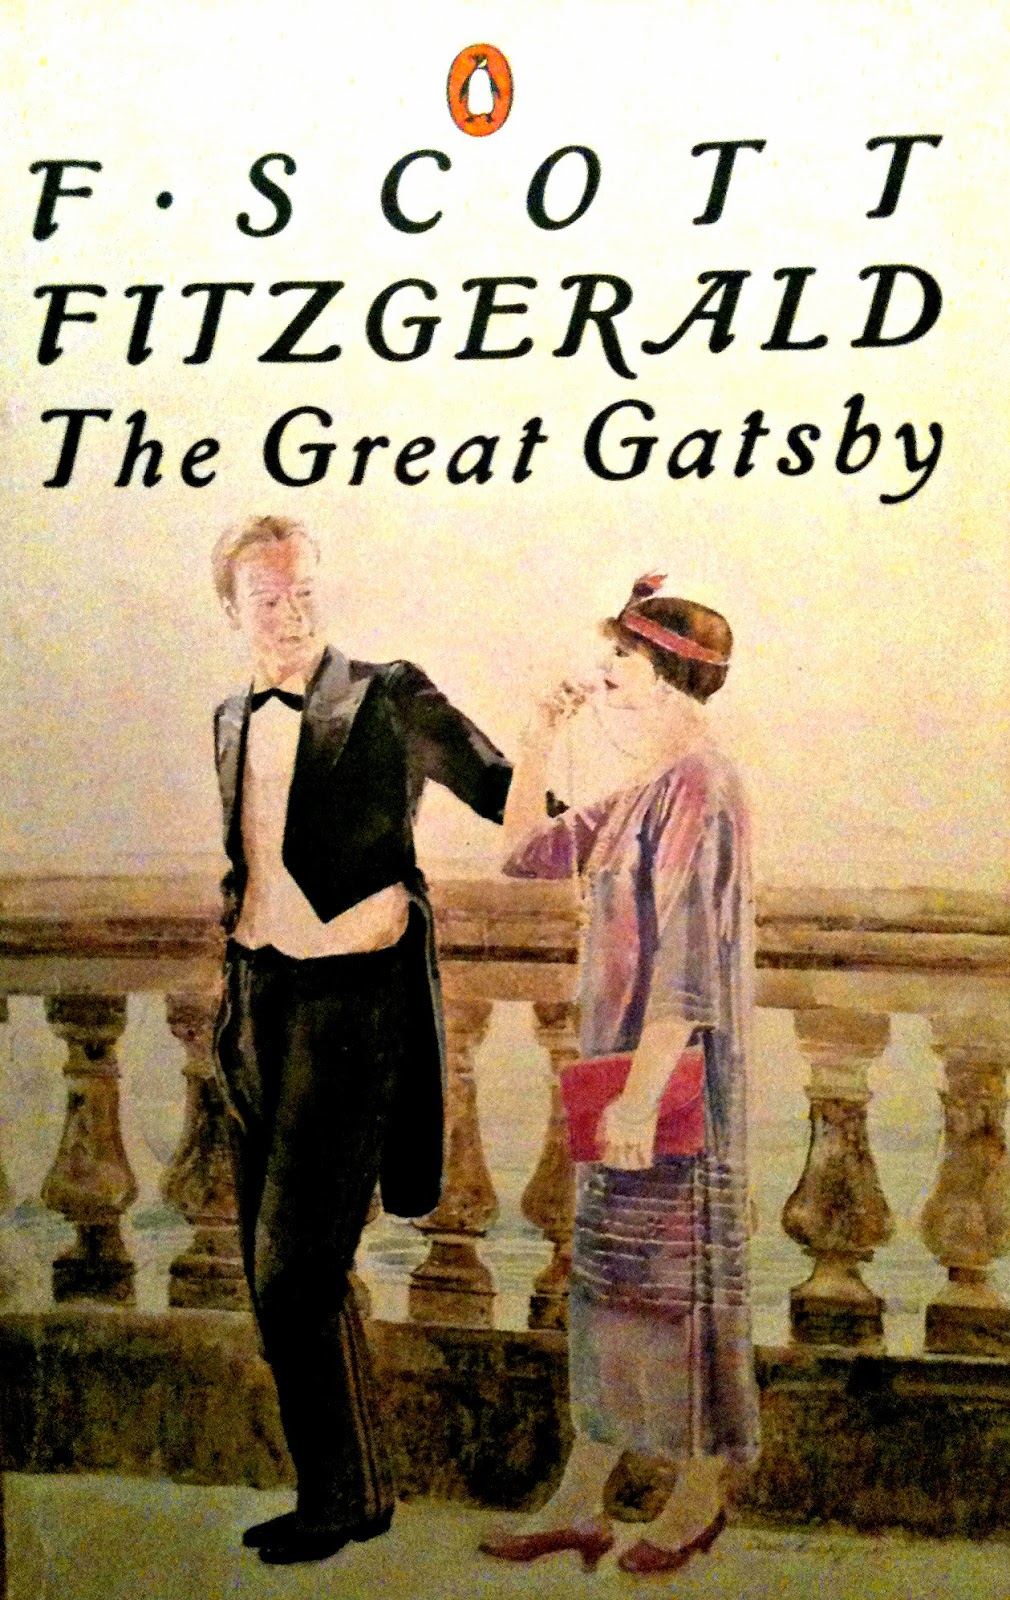 a review in chapters of fitzgeralds the great gatsby